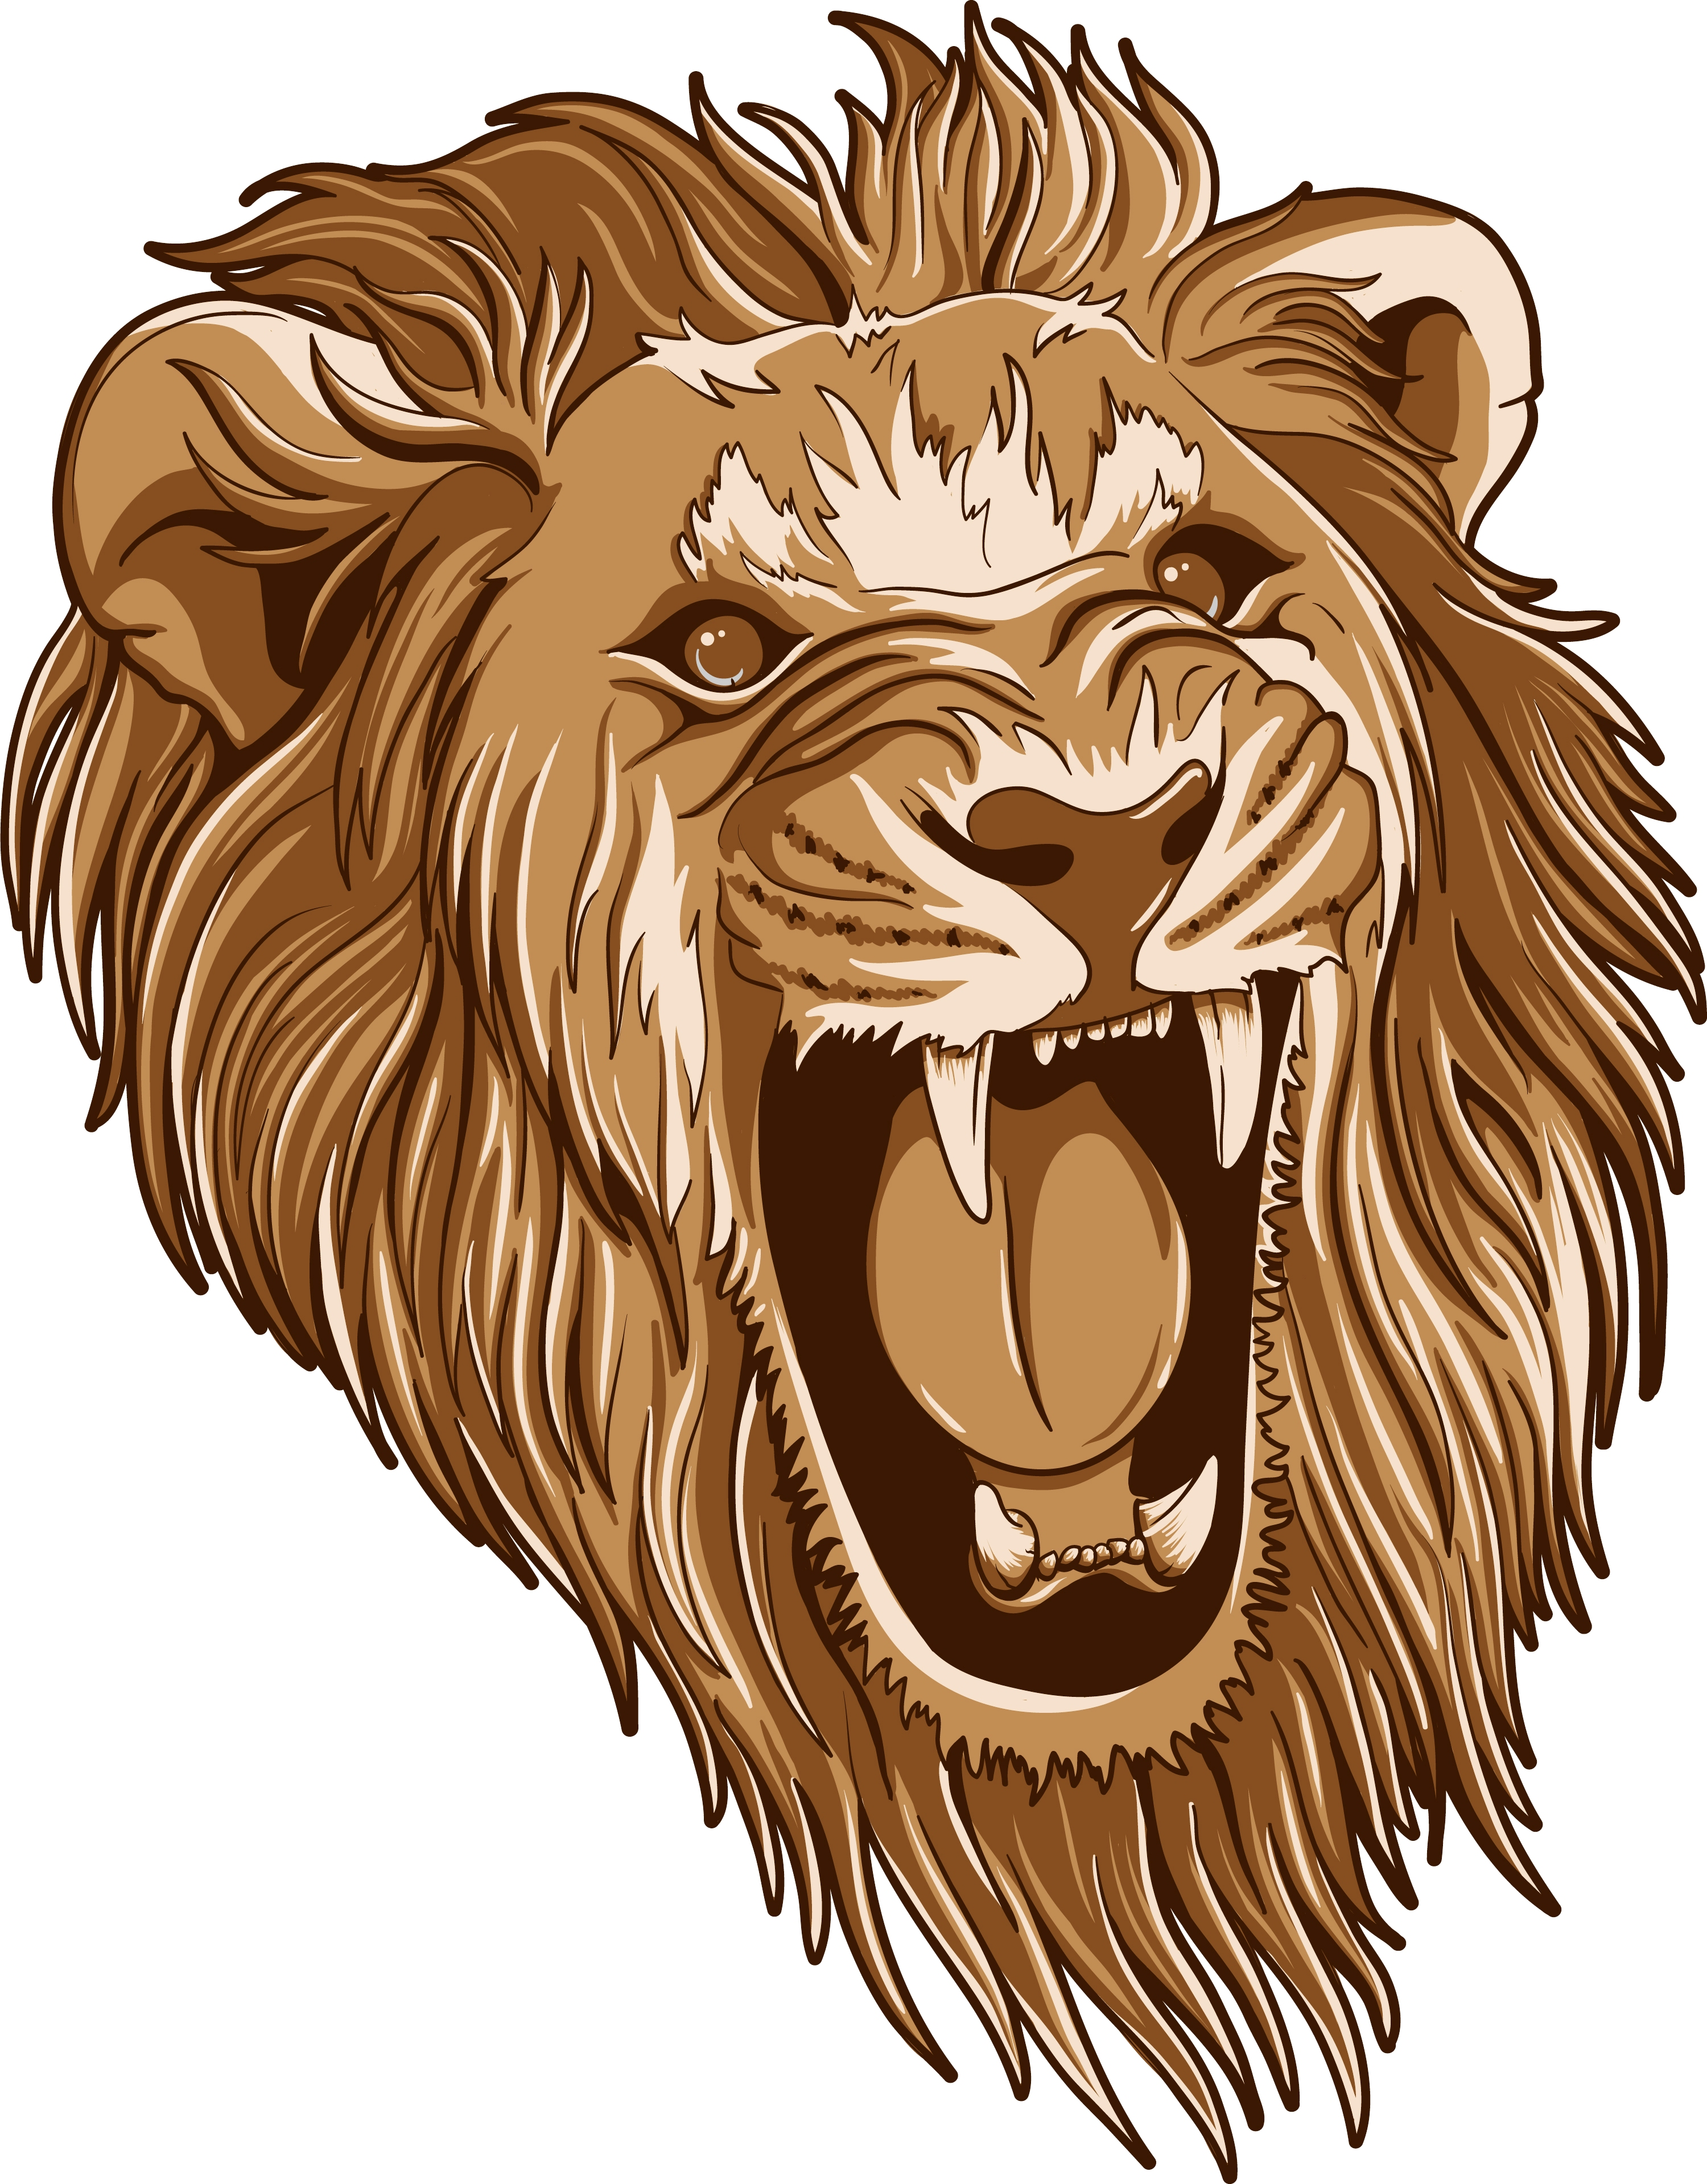 16 Roar On Lion Head Vector Images - Roaring Lion Head ...